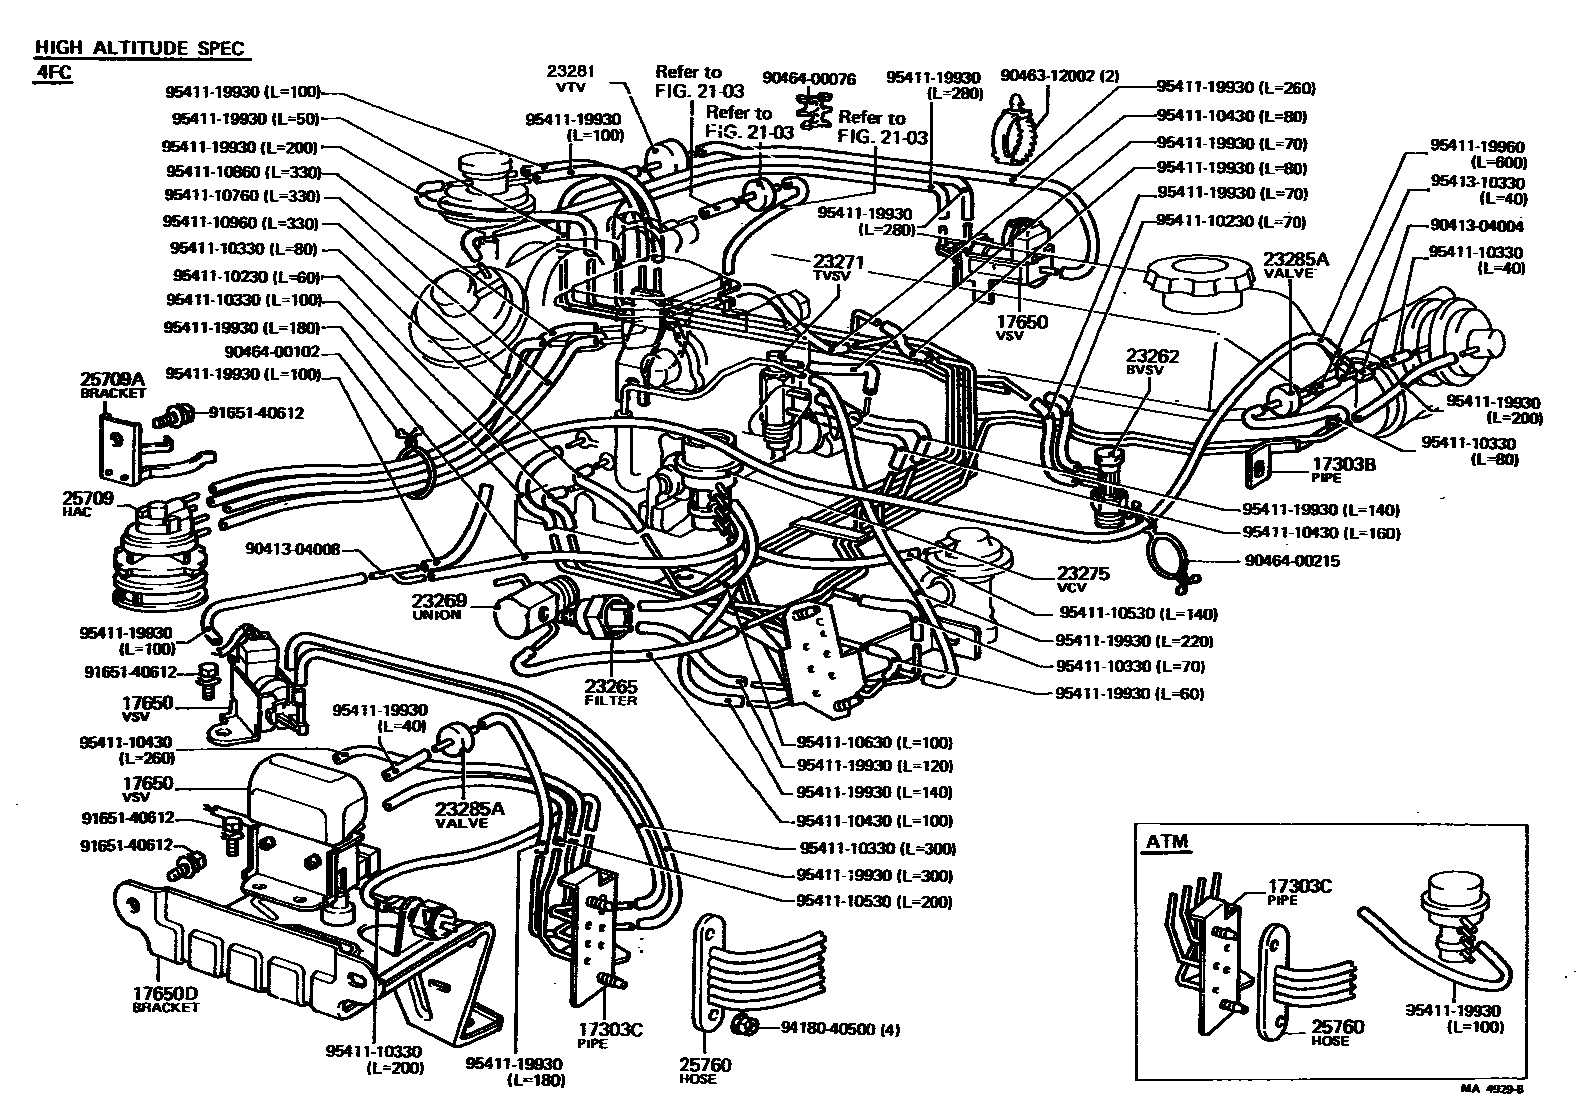 hight resolution of 2009 toyota camry engine diagram schema wiring diagram 2008 camry engine diagram